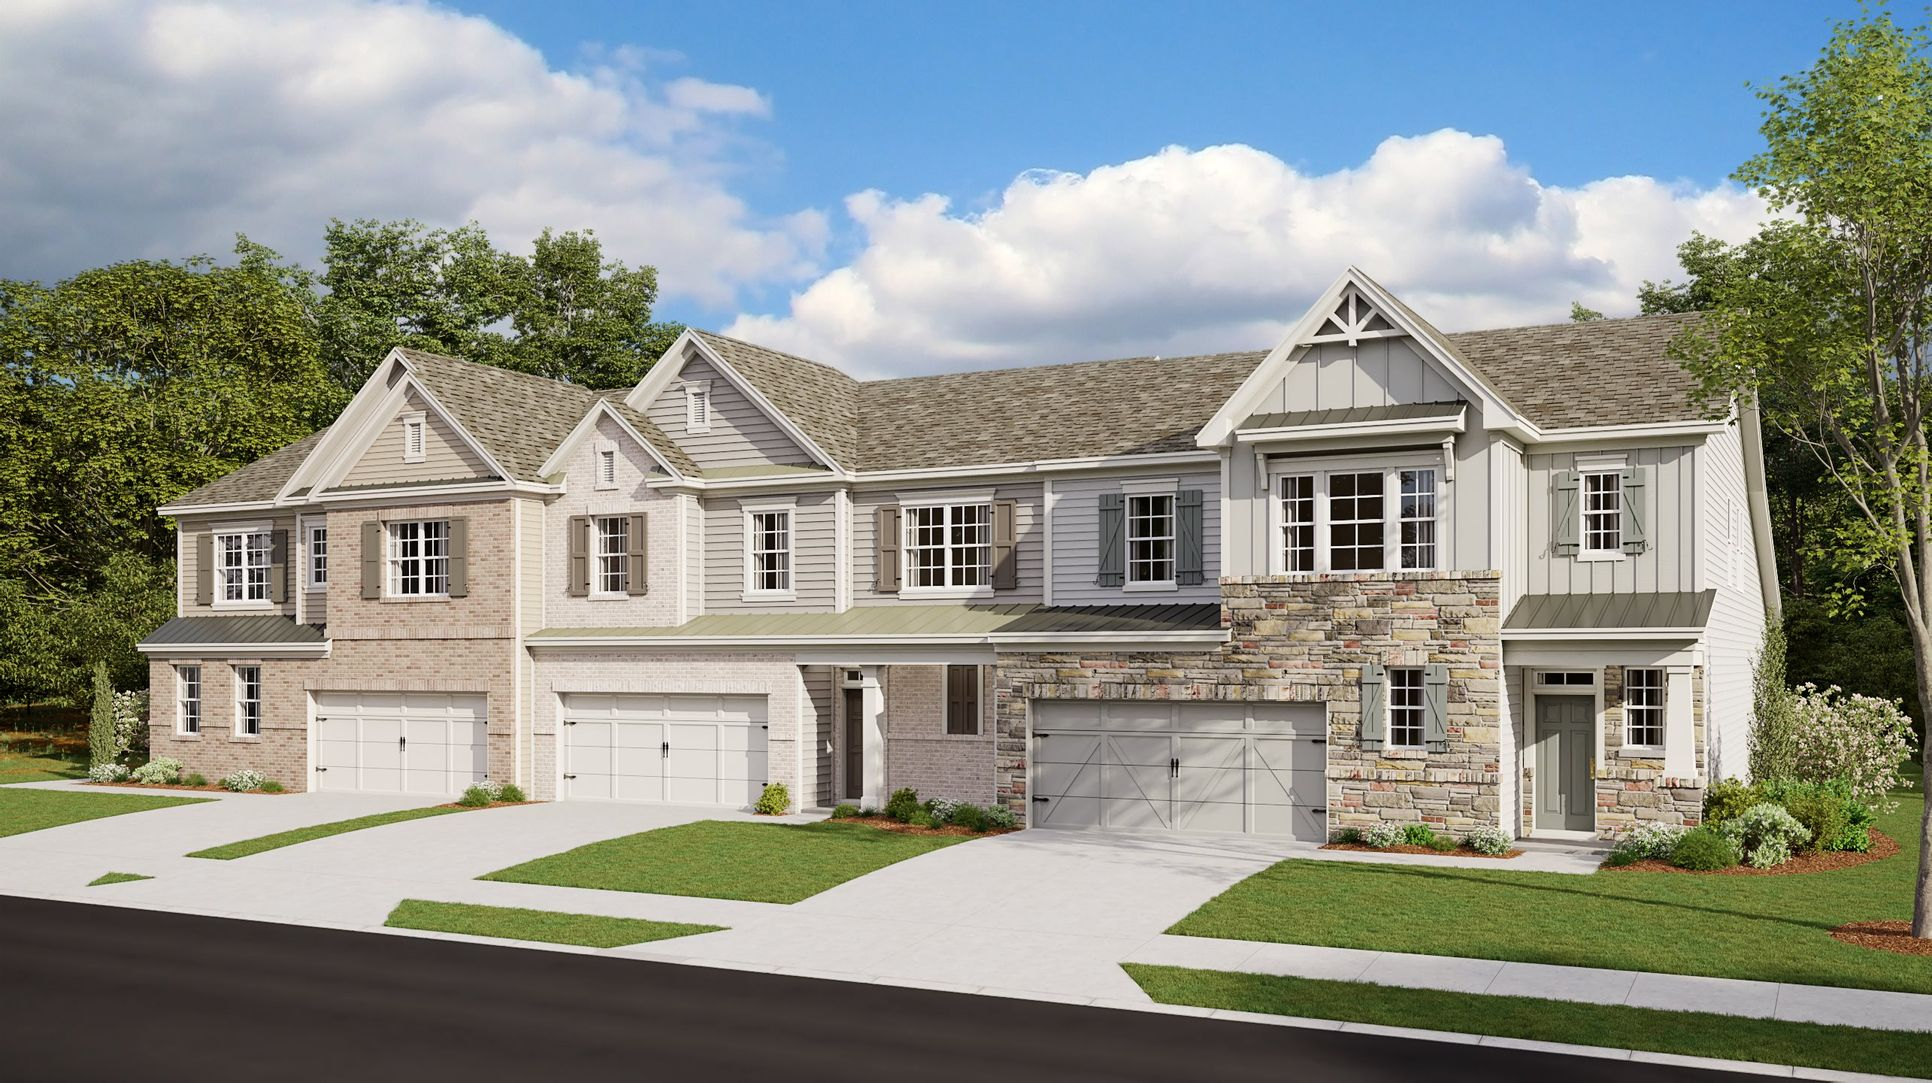 Row of townhomes at Whispering Woods